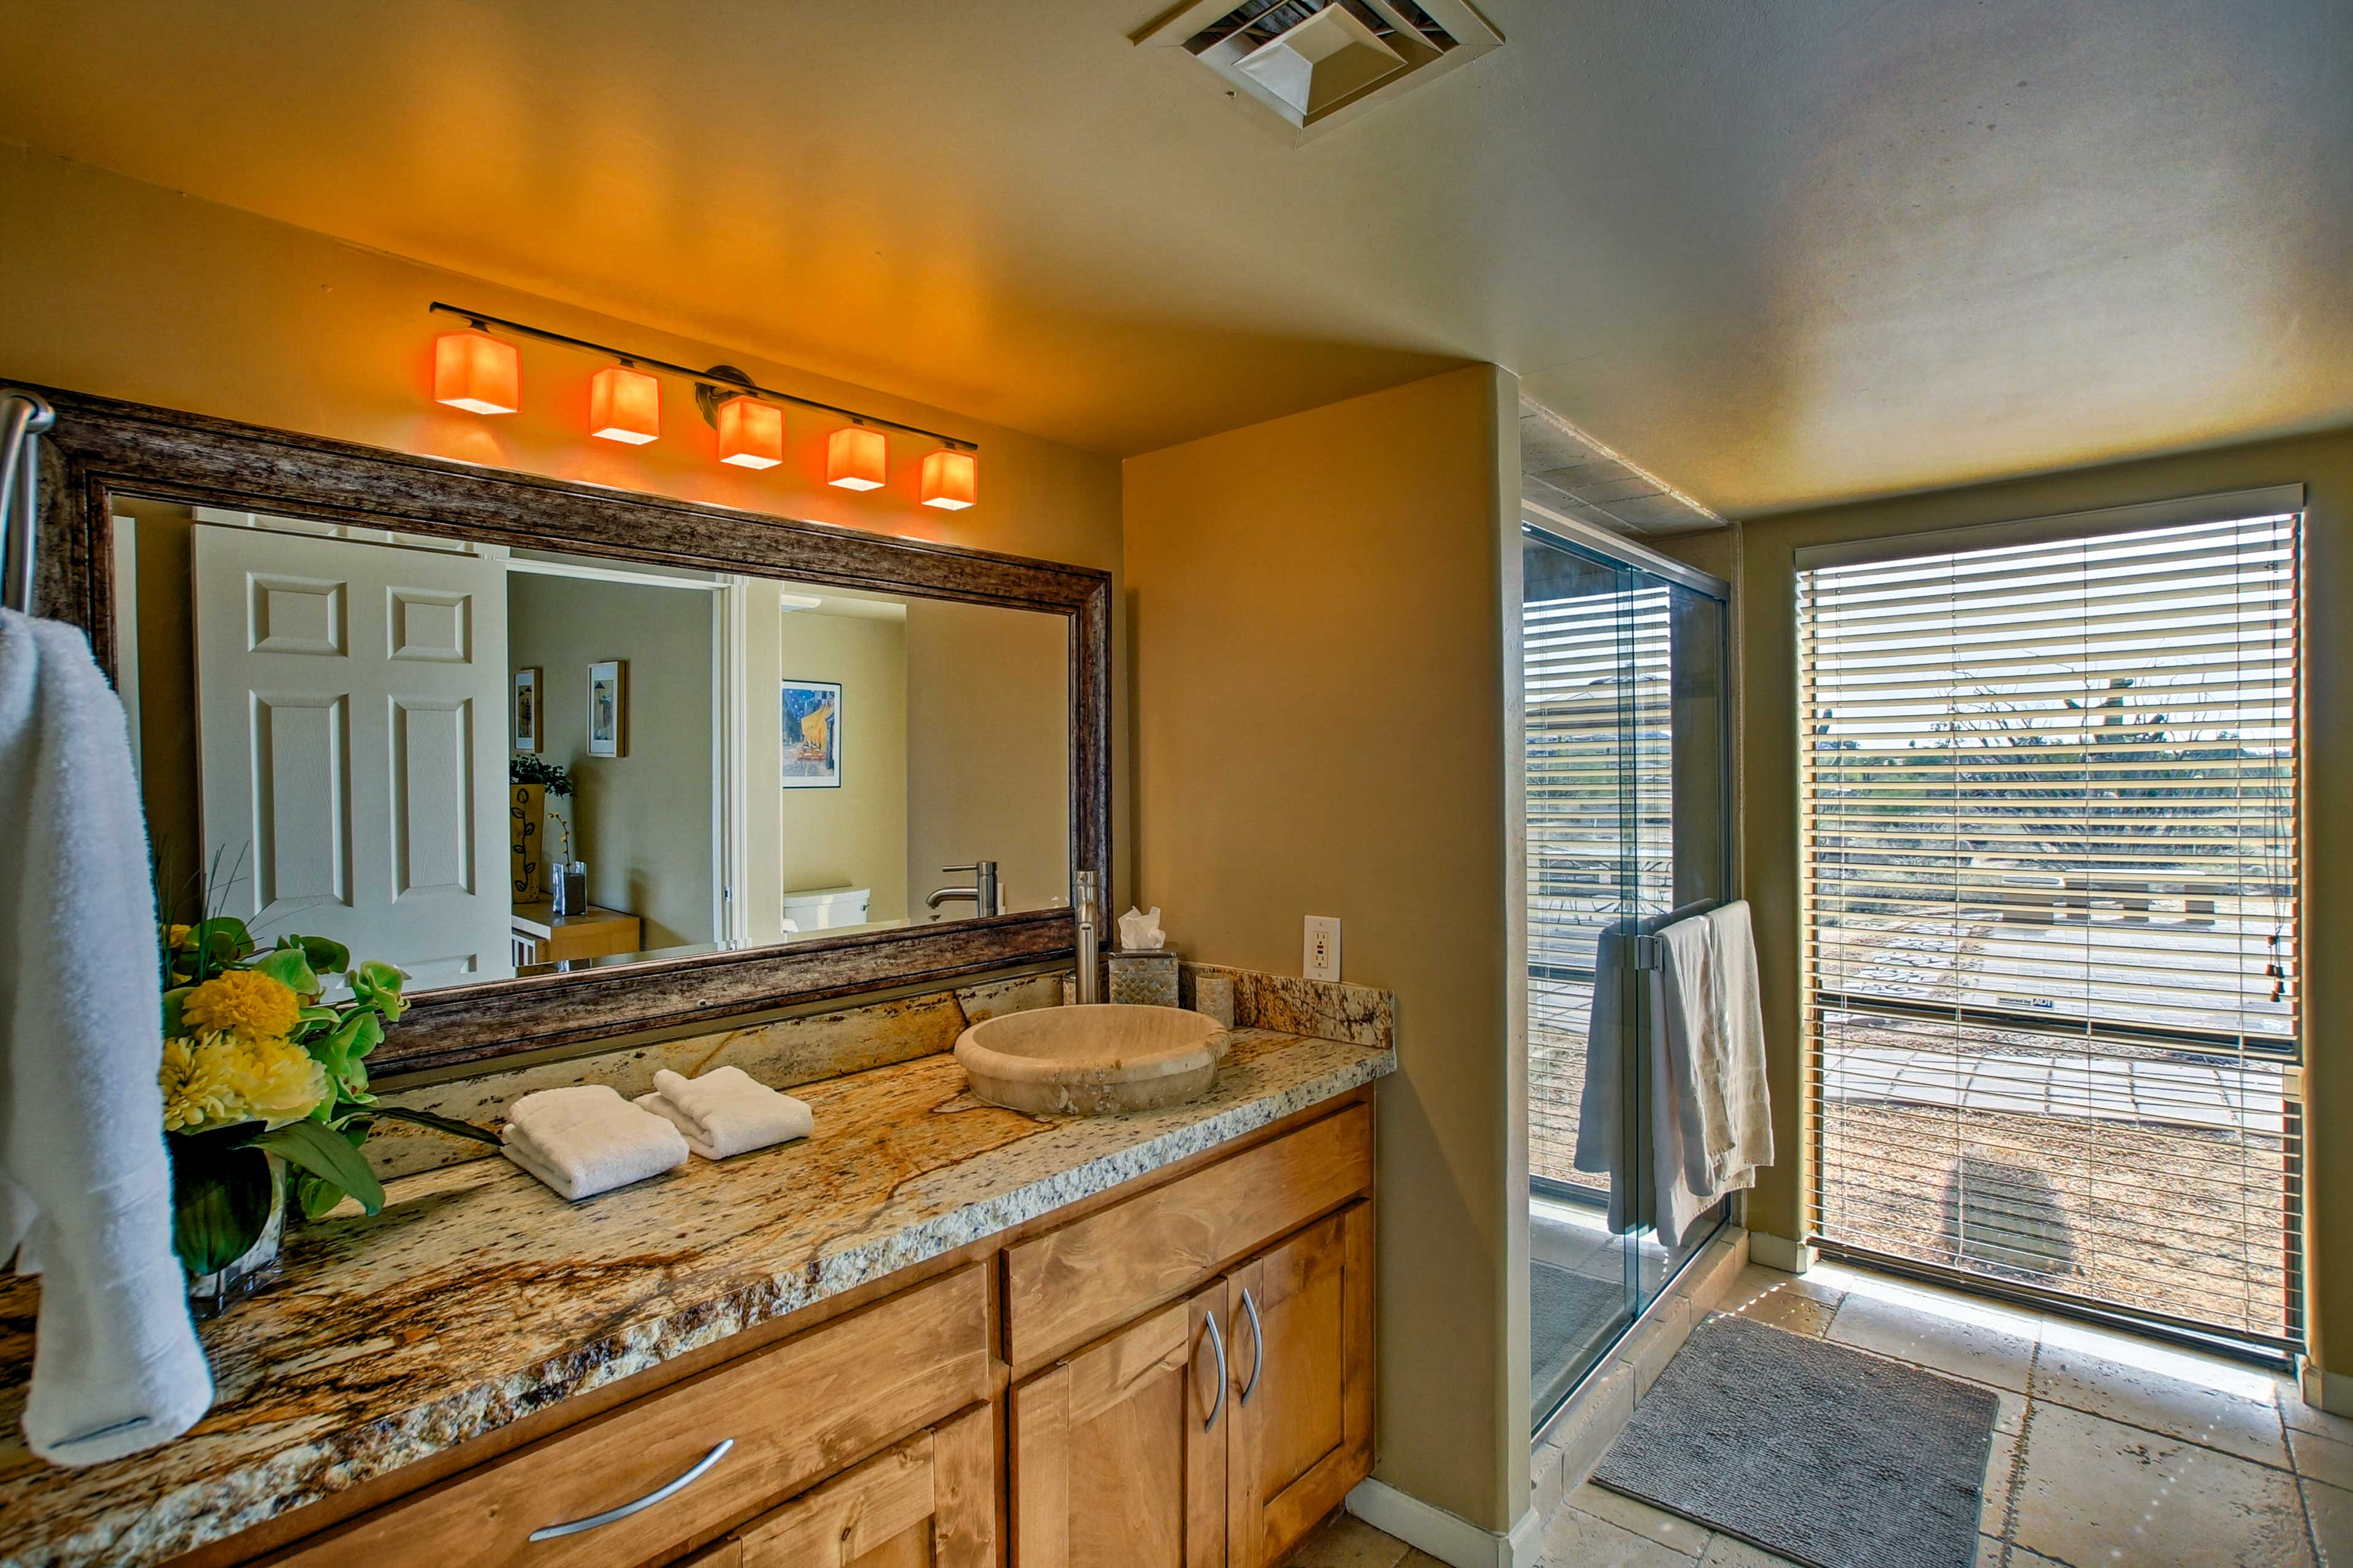 Prepare for a night out in the spacious bathroom.